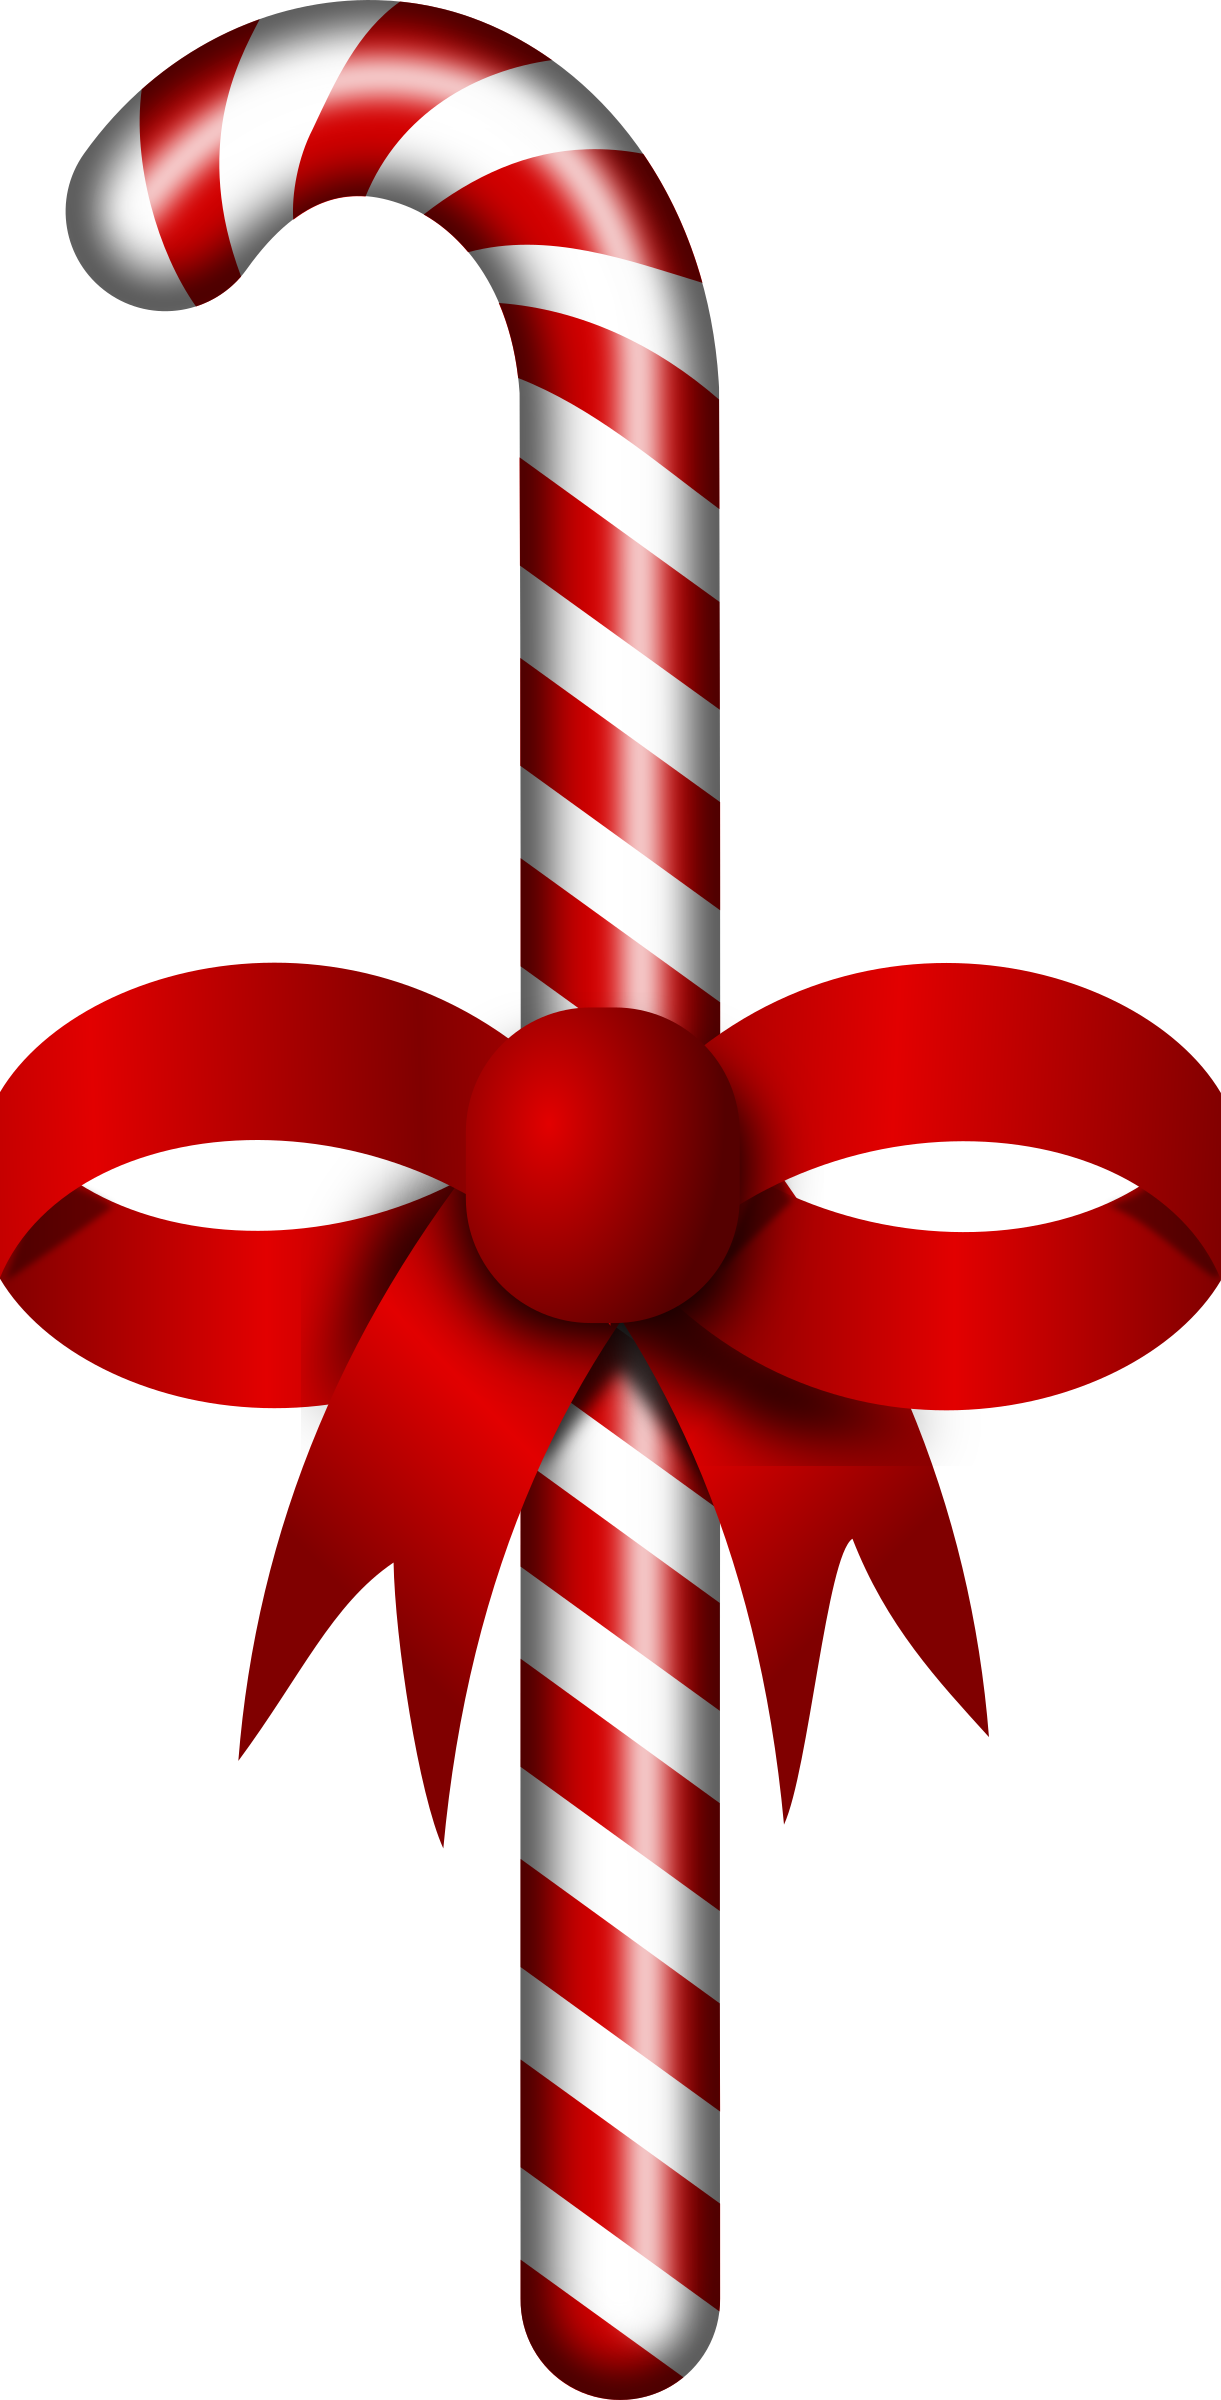 Free candystick by chrisdesign. Holiday clipart stick